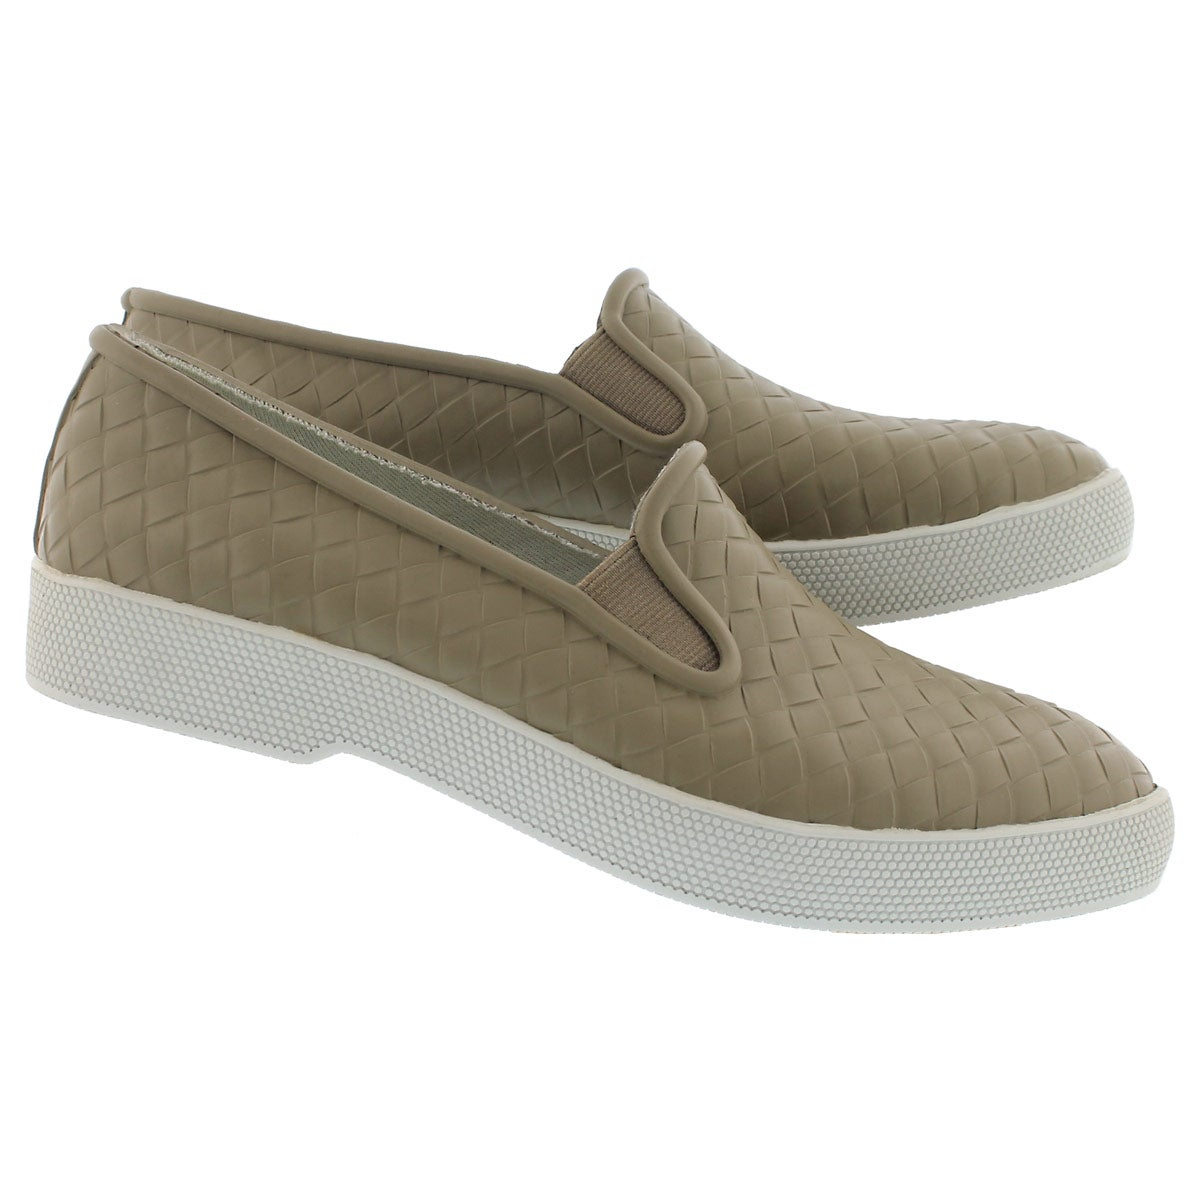 Lds Swoon taupe waterproof slip on shoe